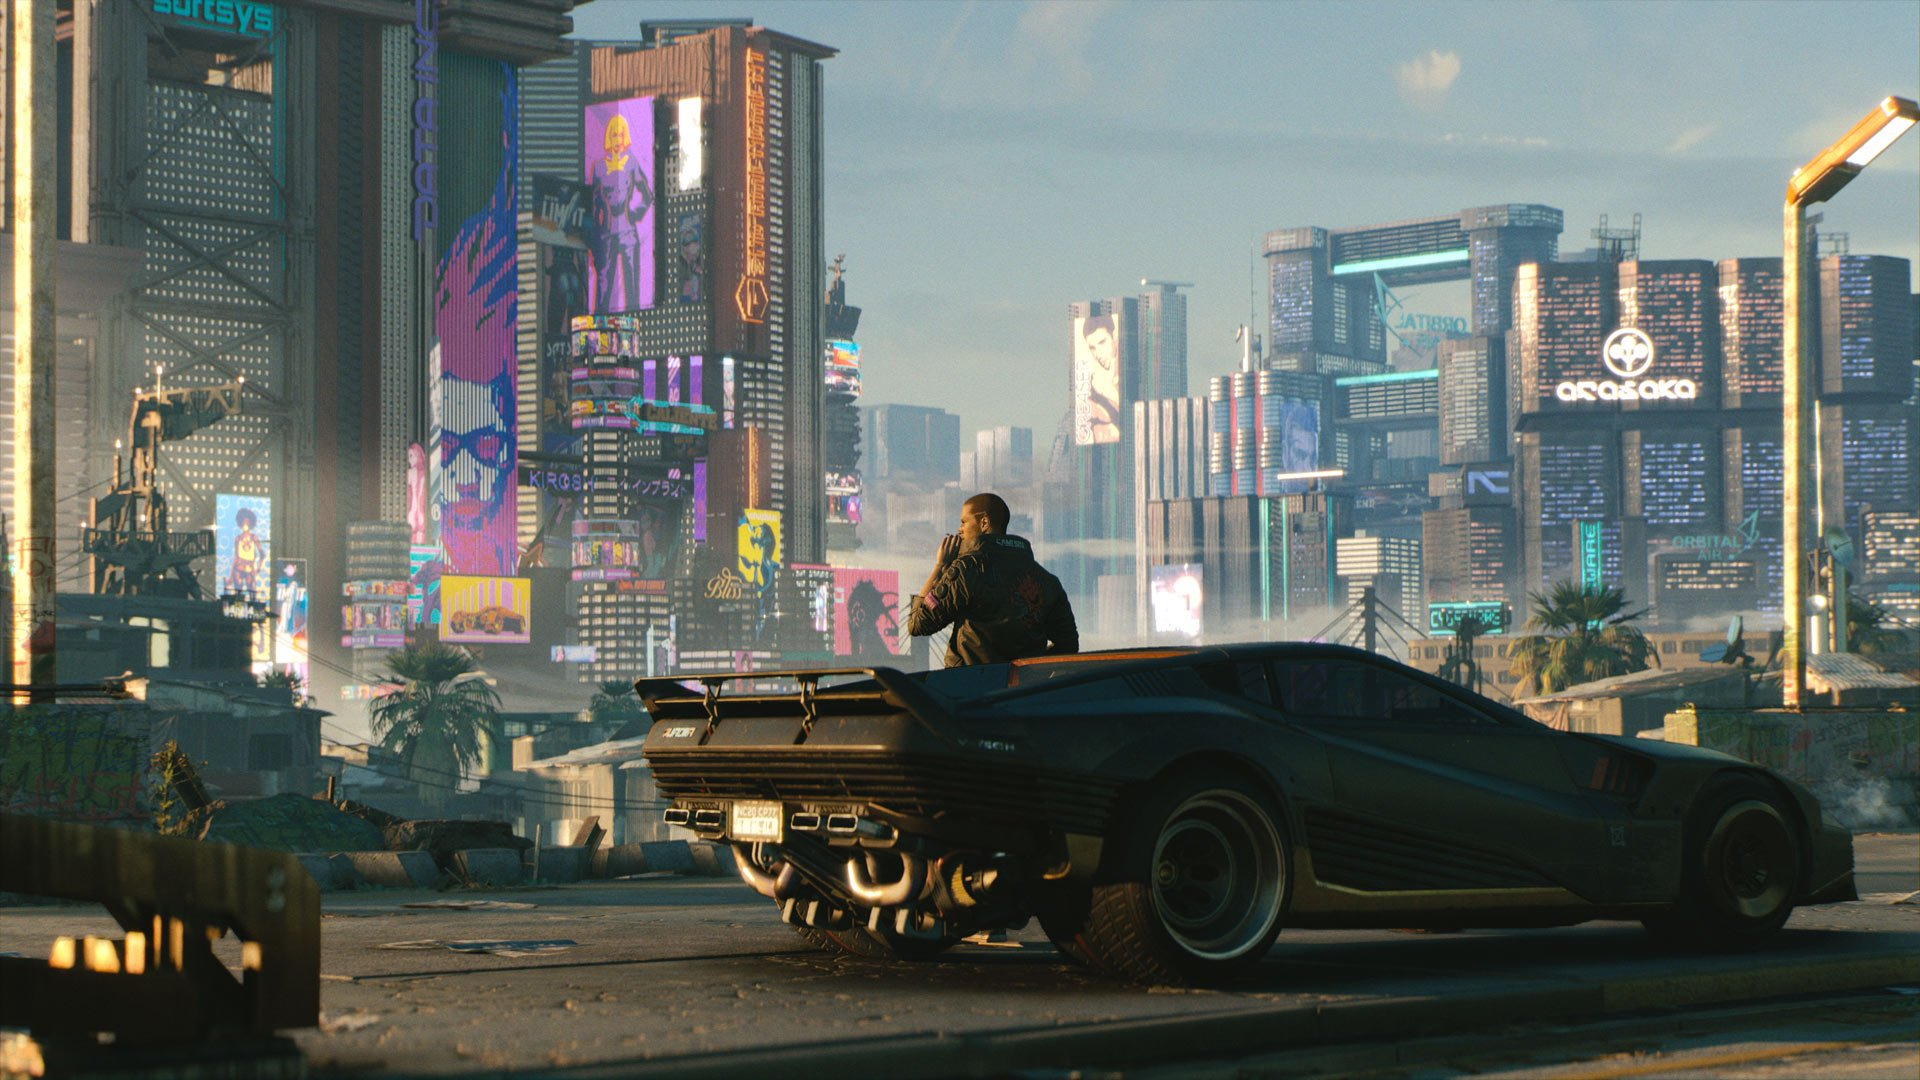 If it releases in 2019, Cyberpunk 2077 will be available on Windows PC.